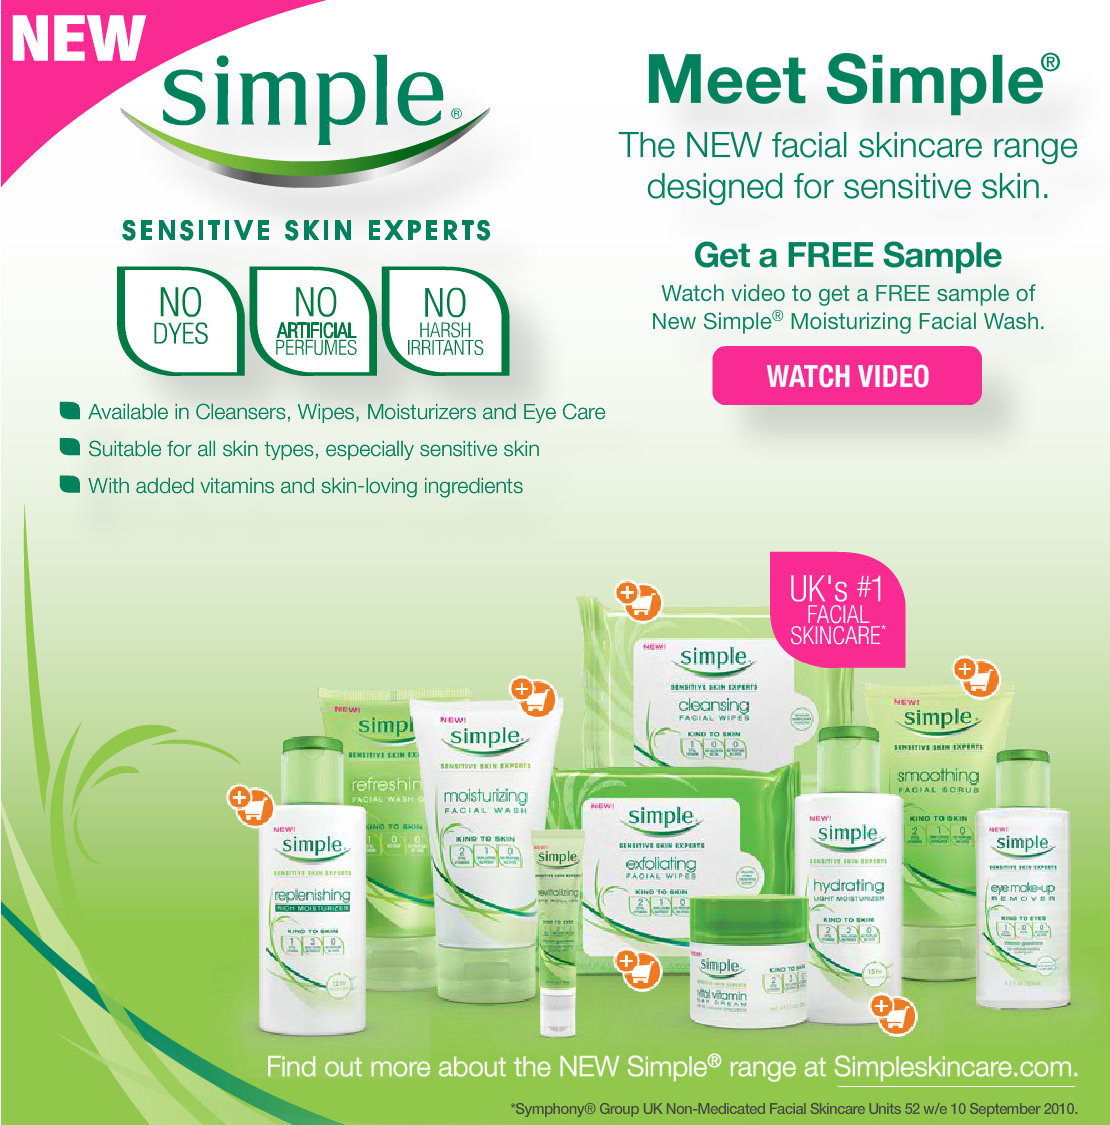 Save $2 off Simple Cleanser or Moisturizer Coupon! Save $ 2 off Simple Cleanser or Moisturizer Coupon! You can Also Follow Us On Facebook, Twitter, Pinterest and Google+ for 24 hour freebie updates and more!